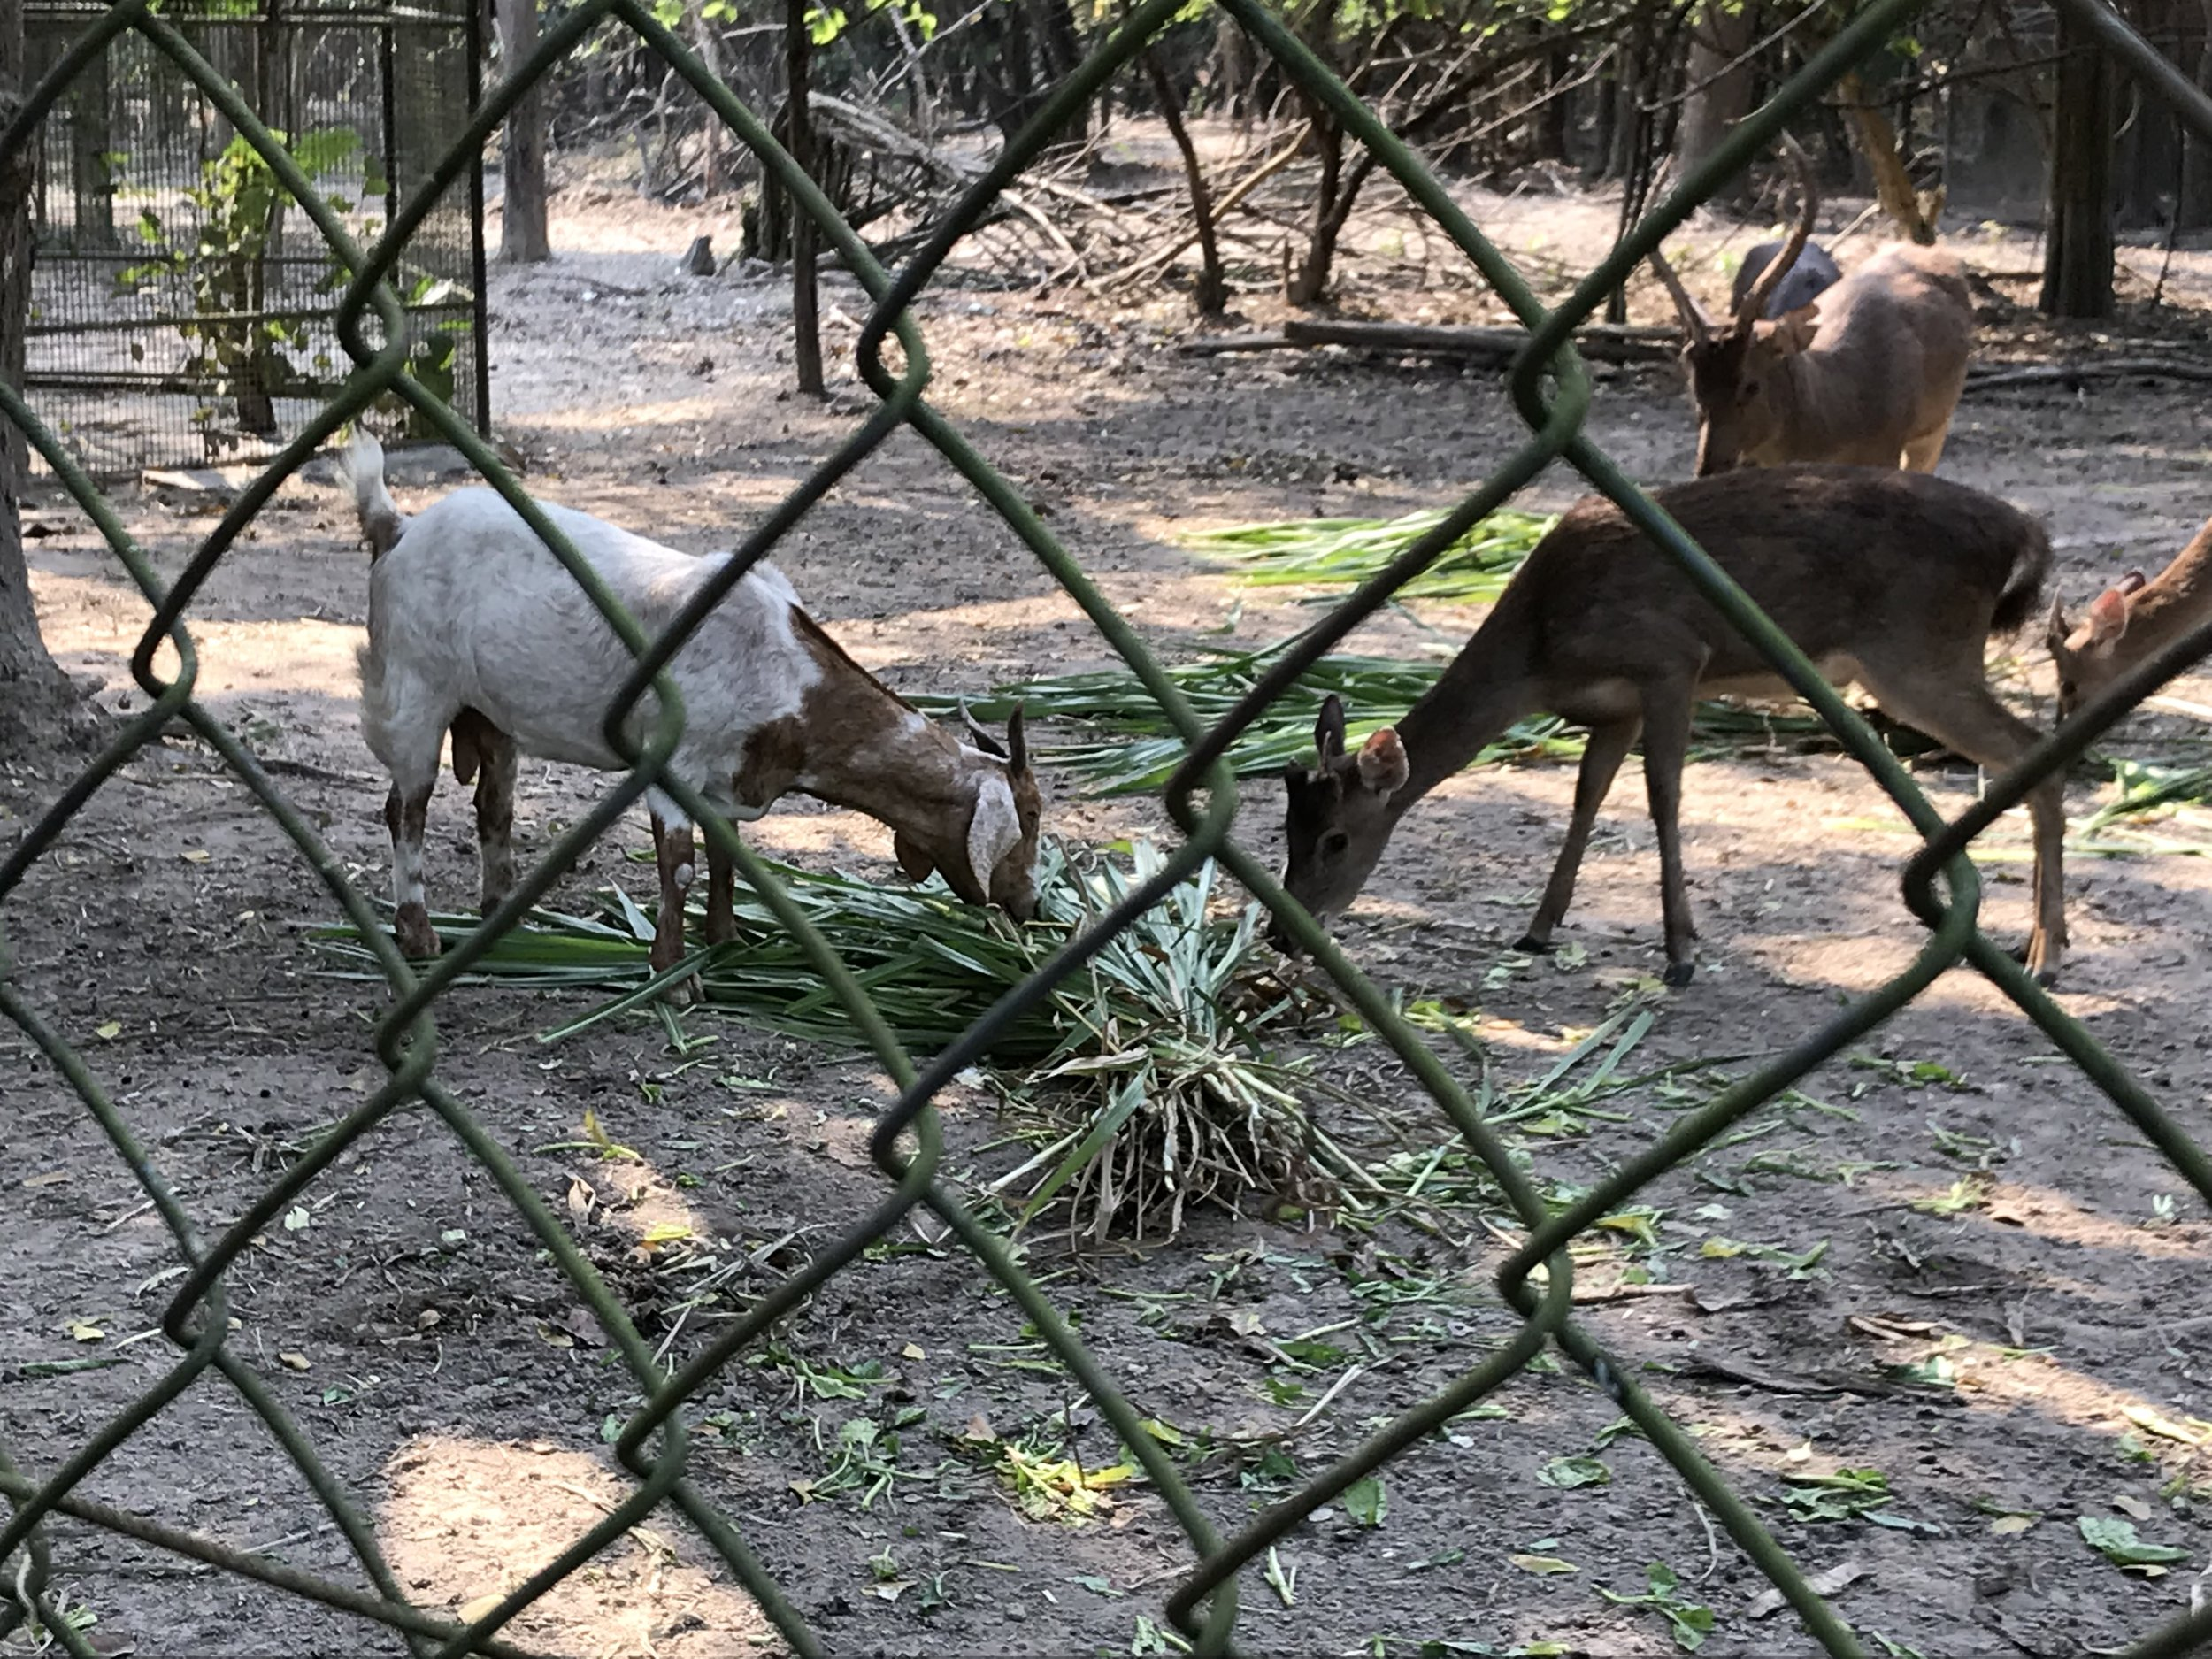 Just a goat and deer sharing a meal